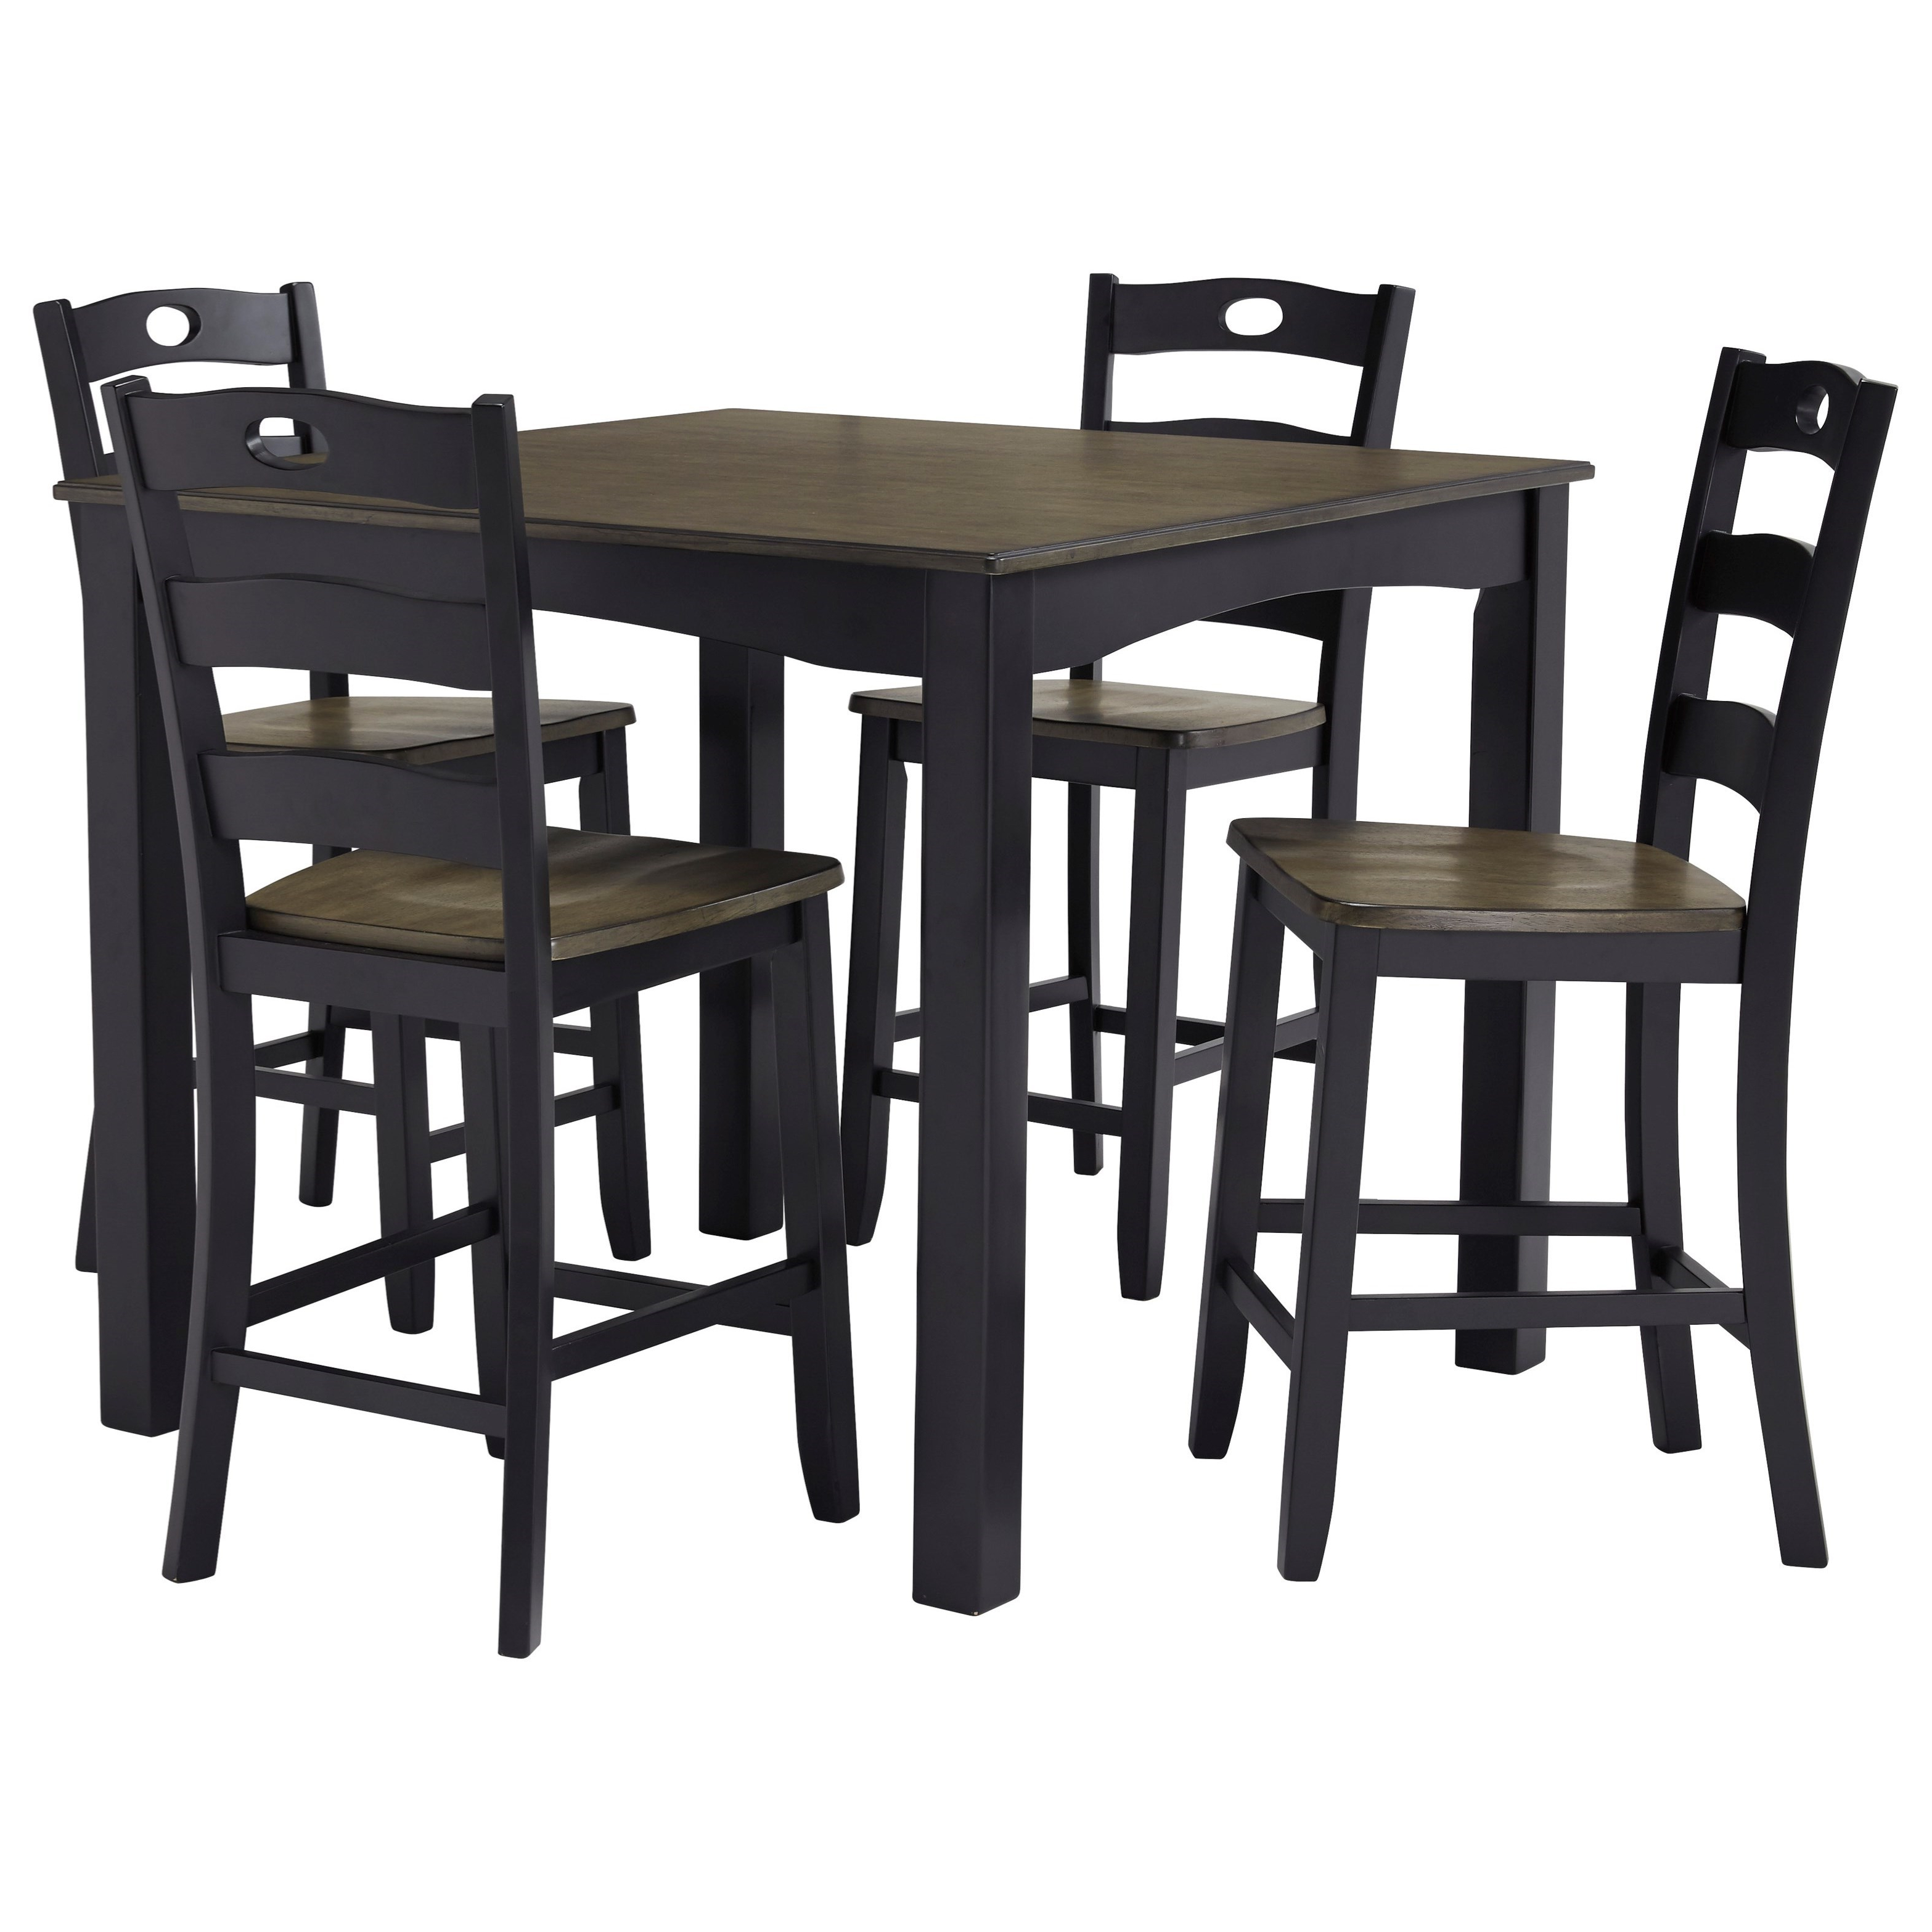 Signature Designashley Froshburg D338 223 Two Tone Finish 5 Throughout Most Recently Released Moorehead 3 Piece Counter Height Dining Sets (View 20 of 25)